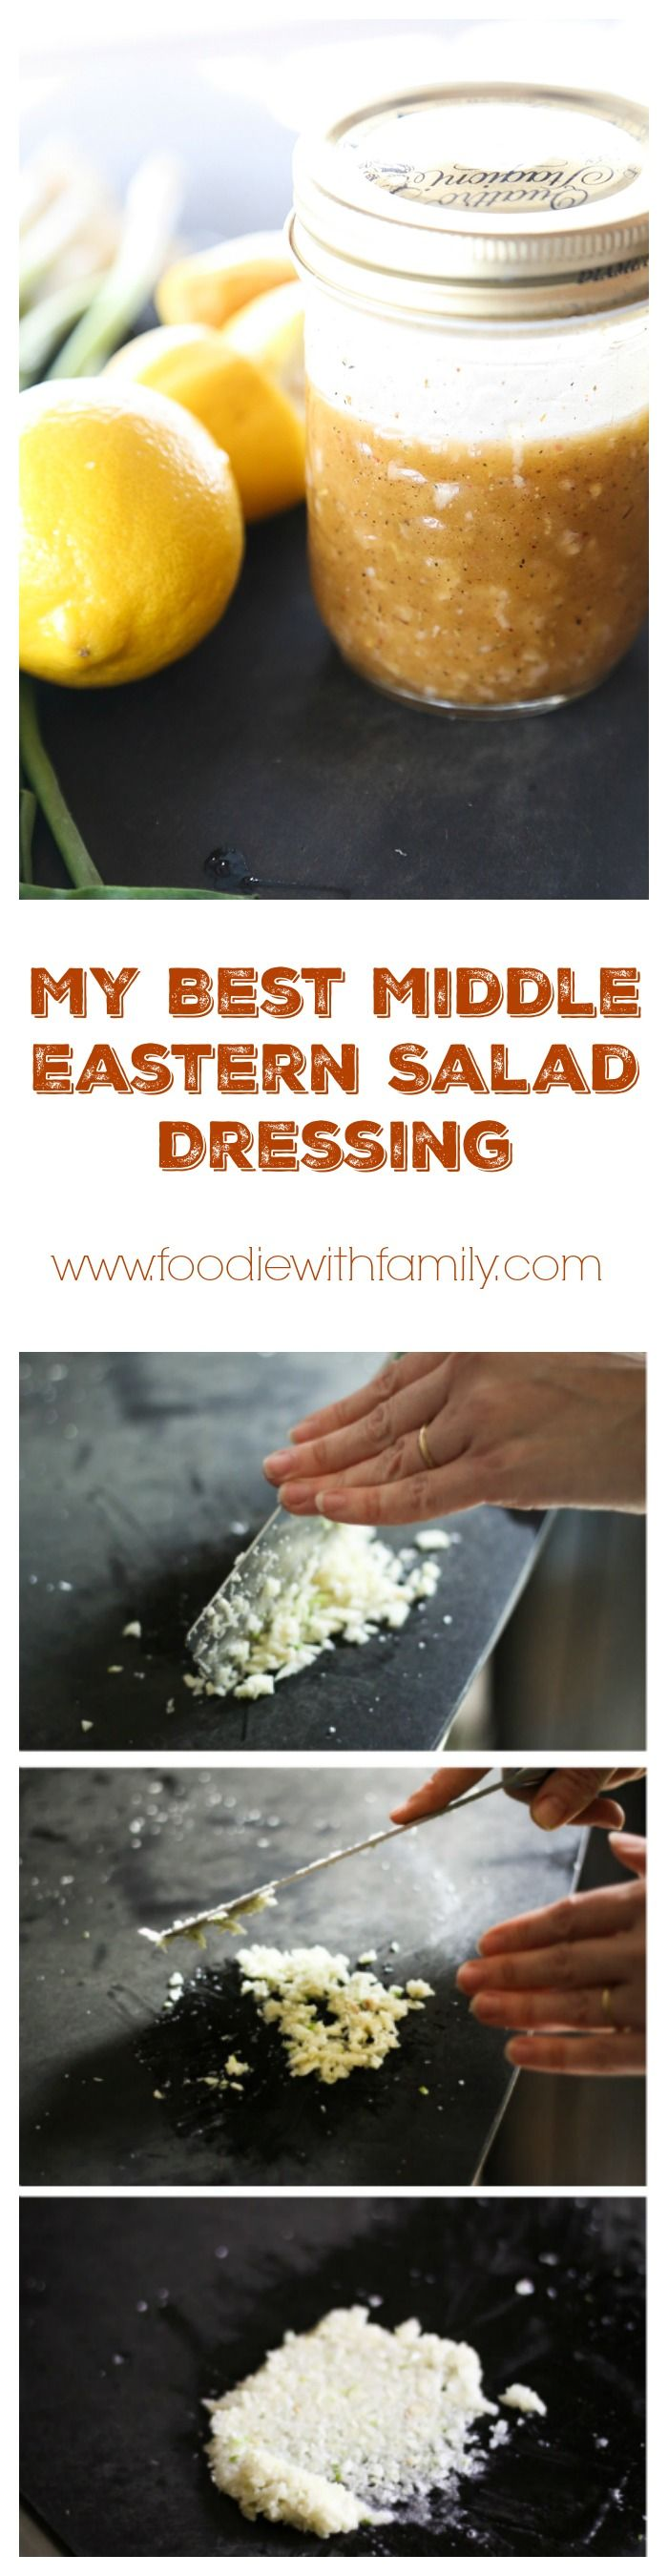 http://cf.foodiewithfamily.com/wp-content/uploads/2013/05/smashing-garlic-for-fattoush.jpg